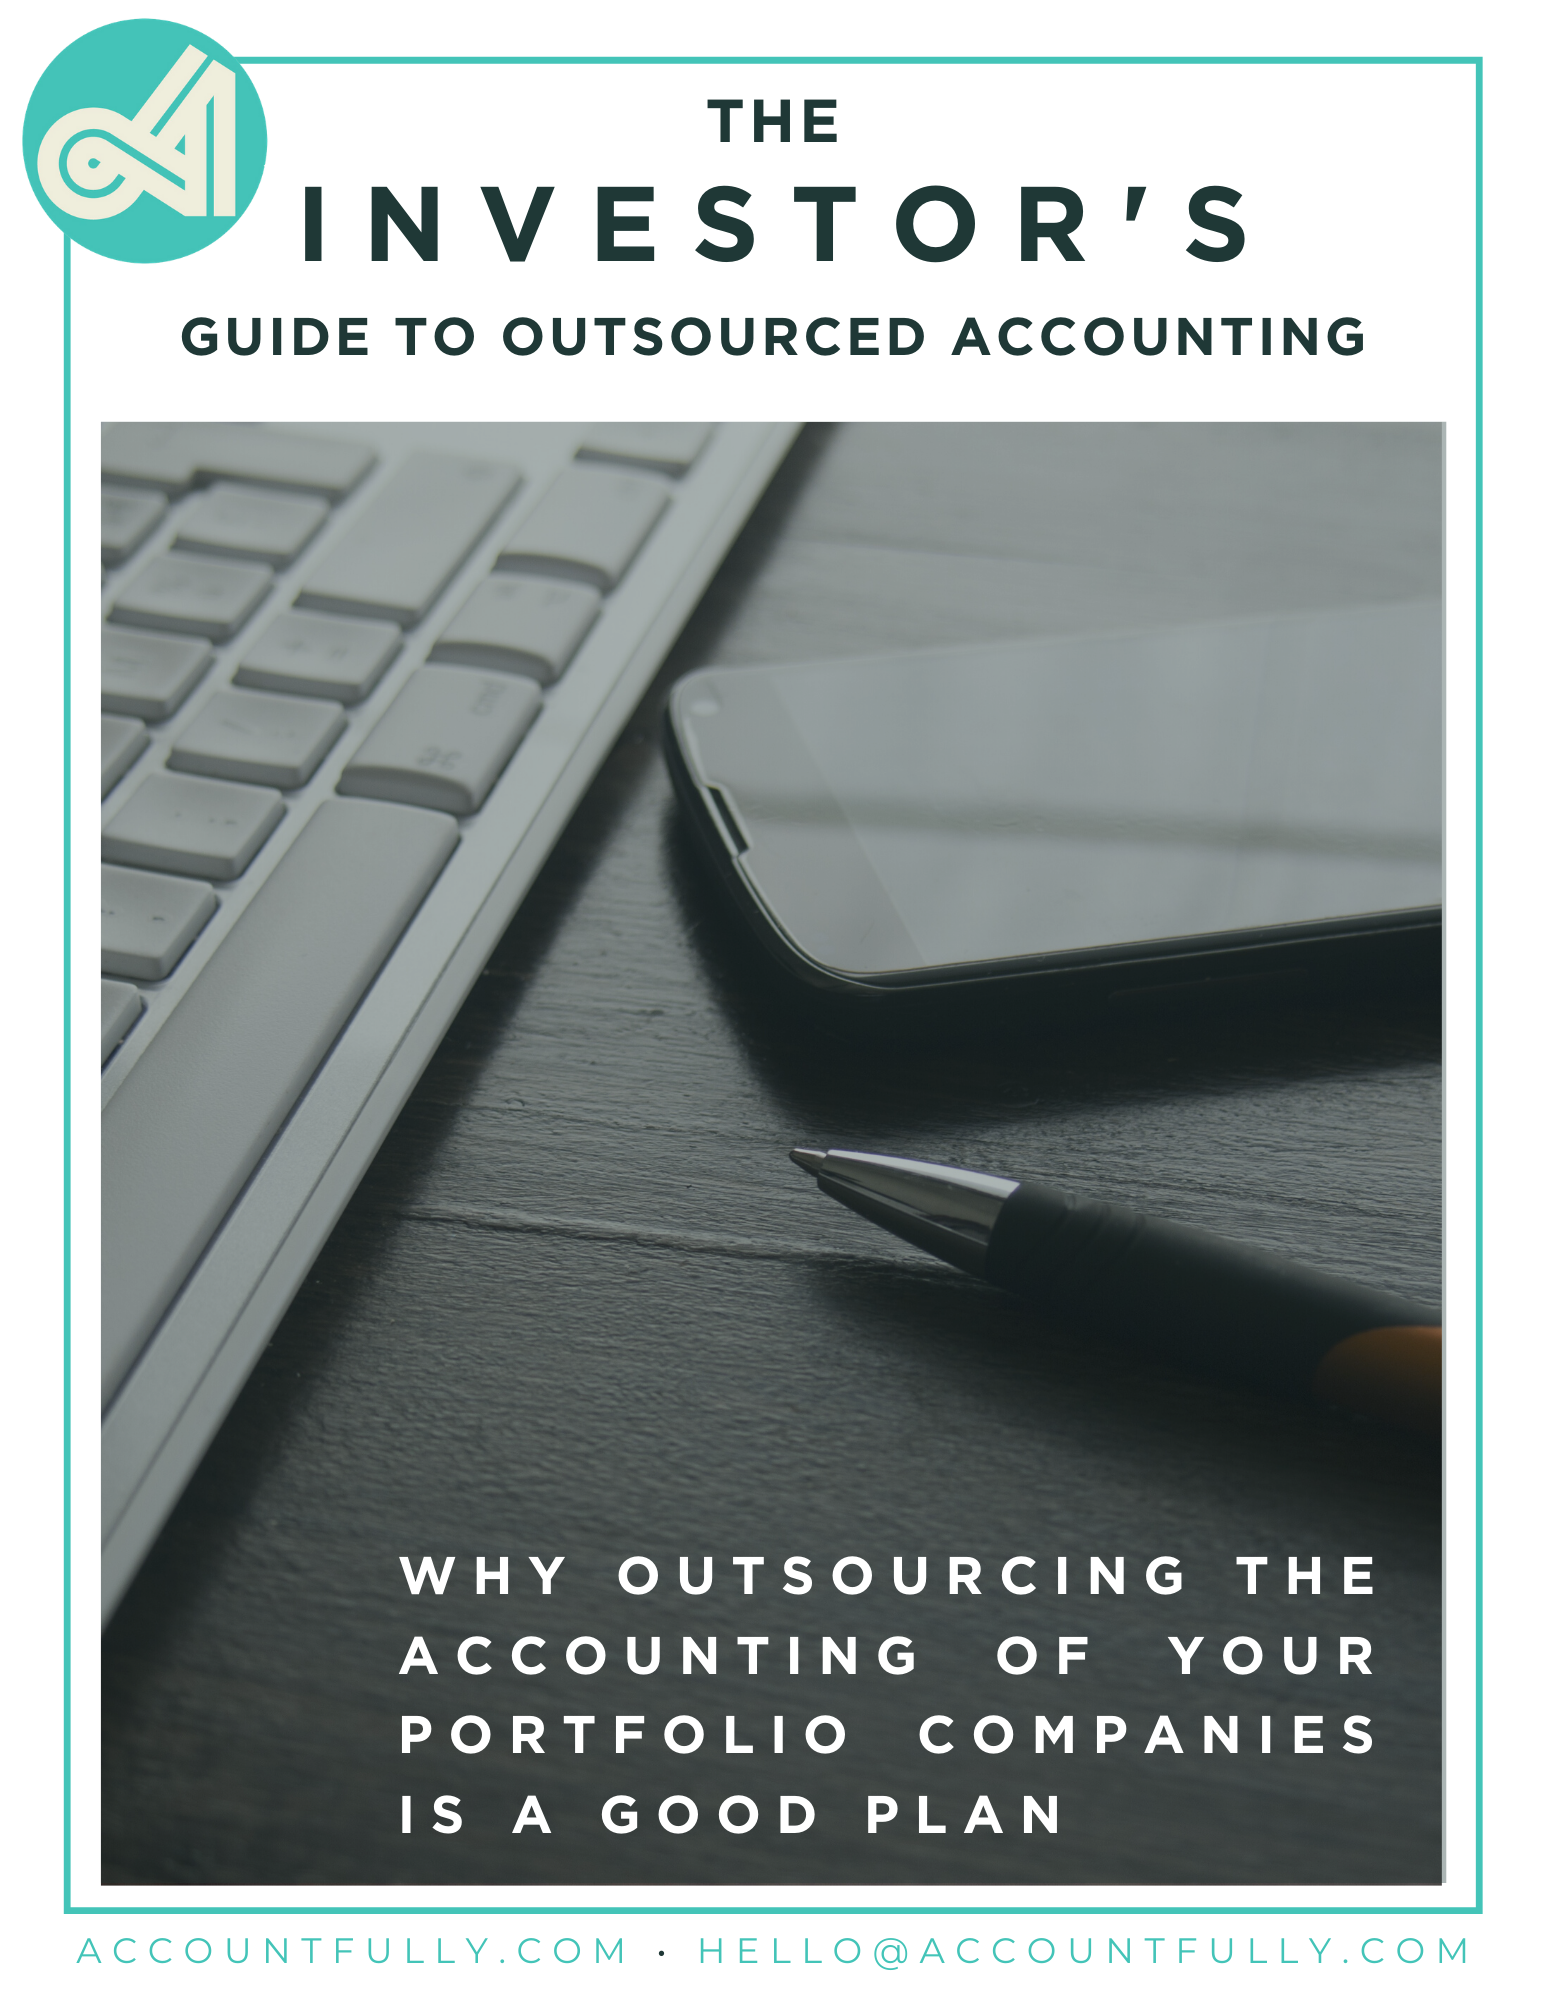 the investors guide to outsourced accounting-1